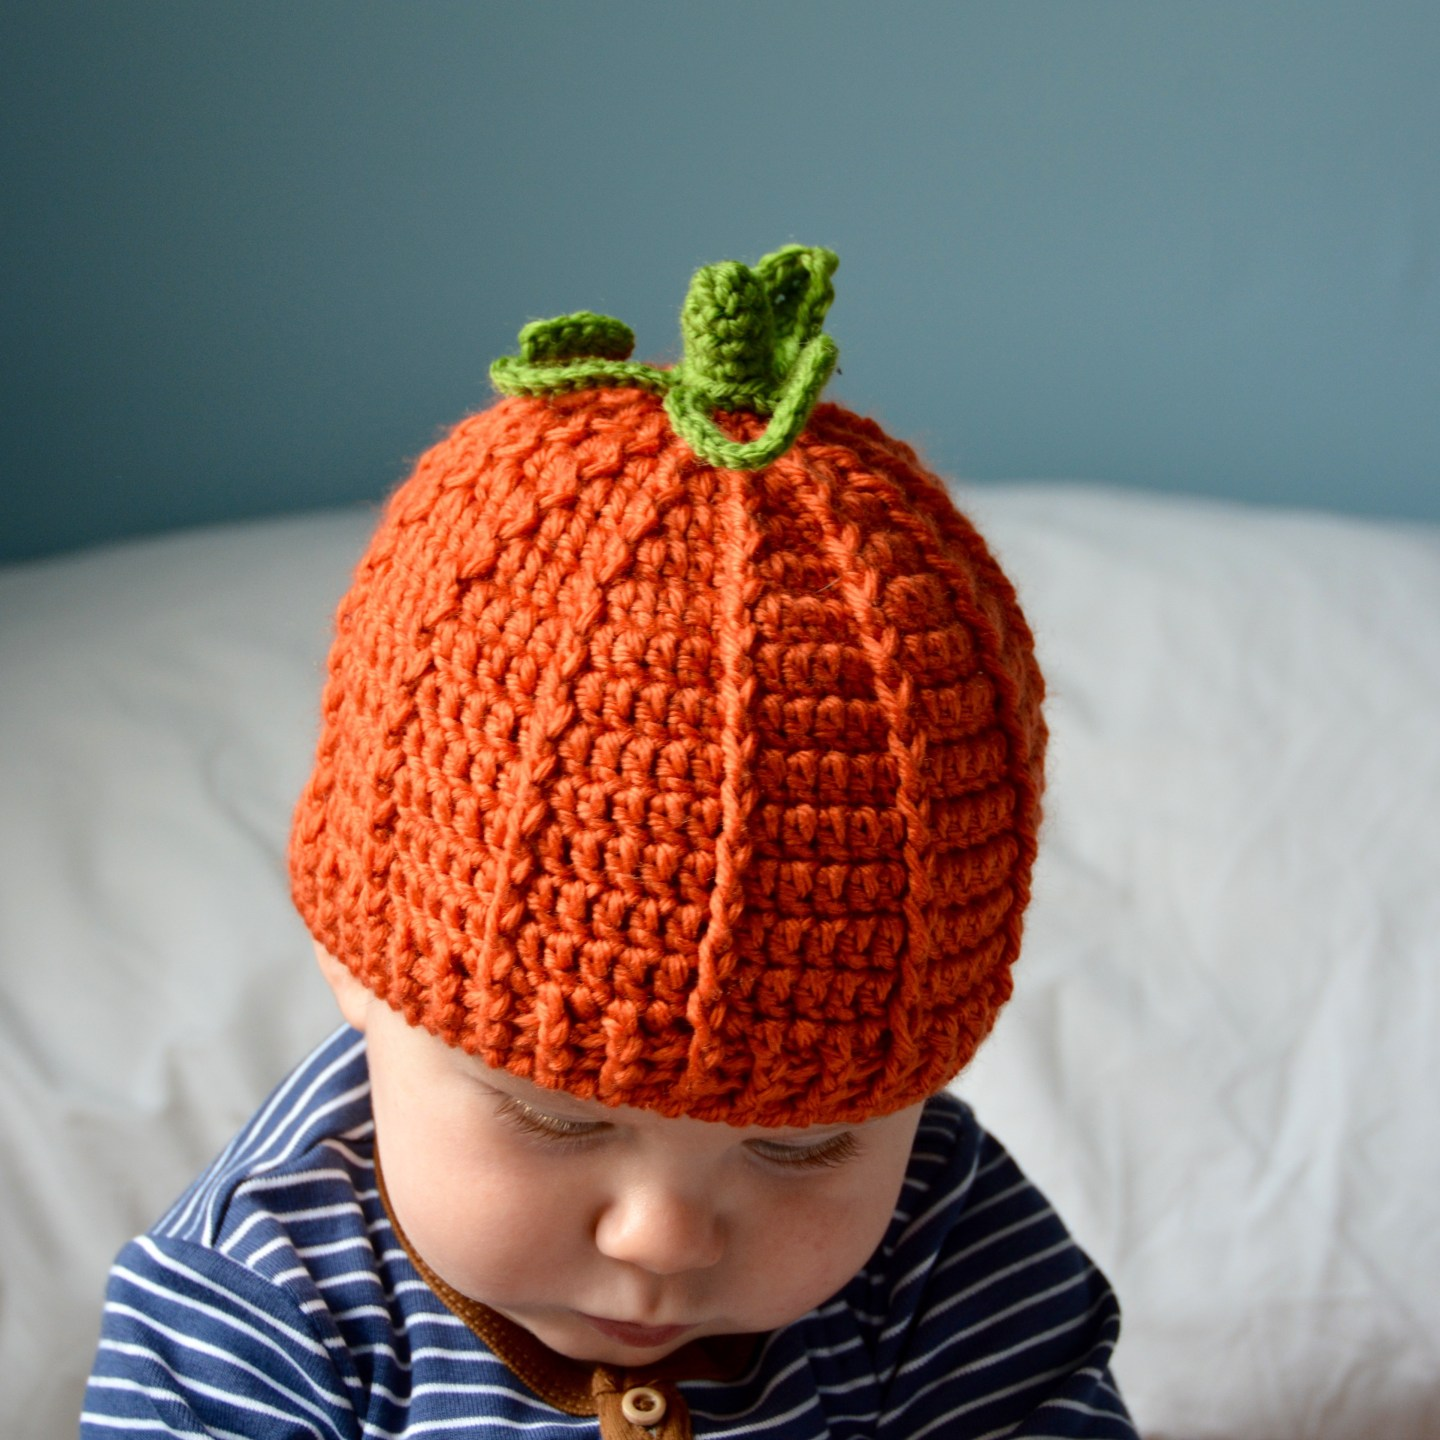 The Pumpkin Beanie Hat - If you're looking for something to wear for your children this Halloween, these 13 spooky crochet hat patterns for kids is a start. #kidscrochethat #crochethatpatterns #spookycrochethat